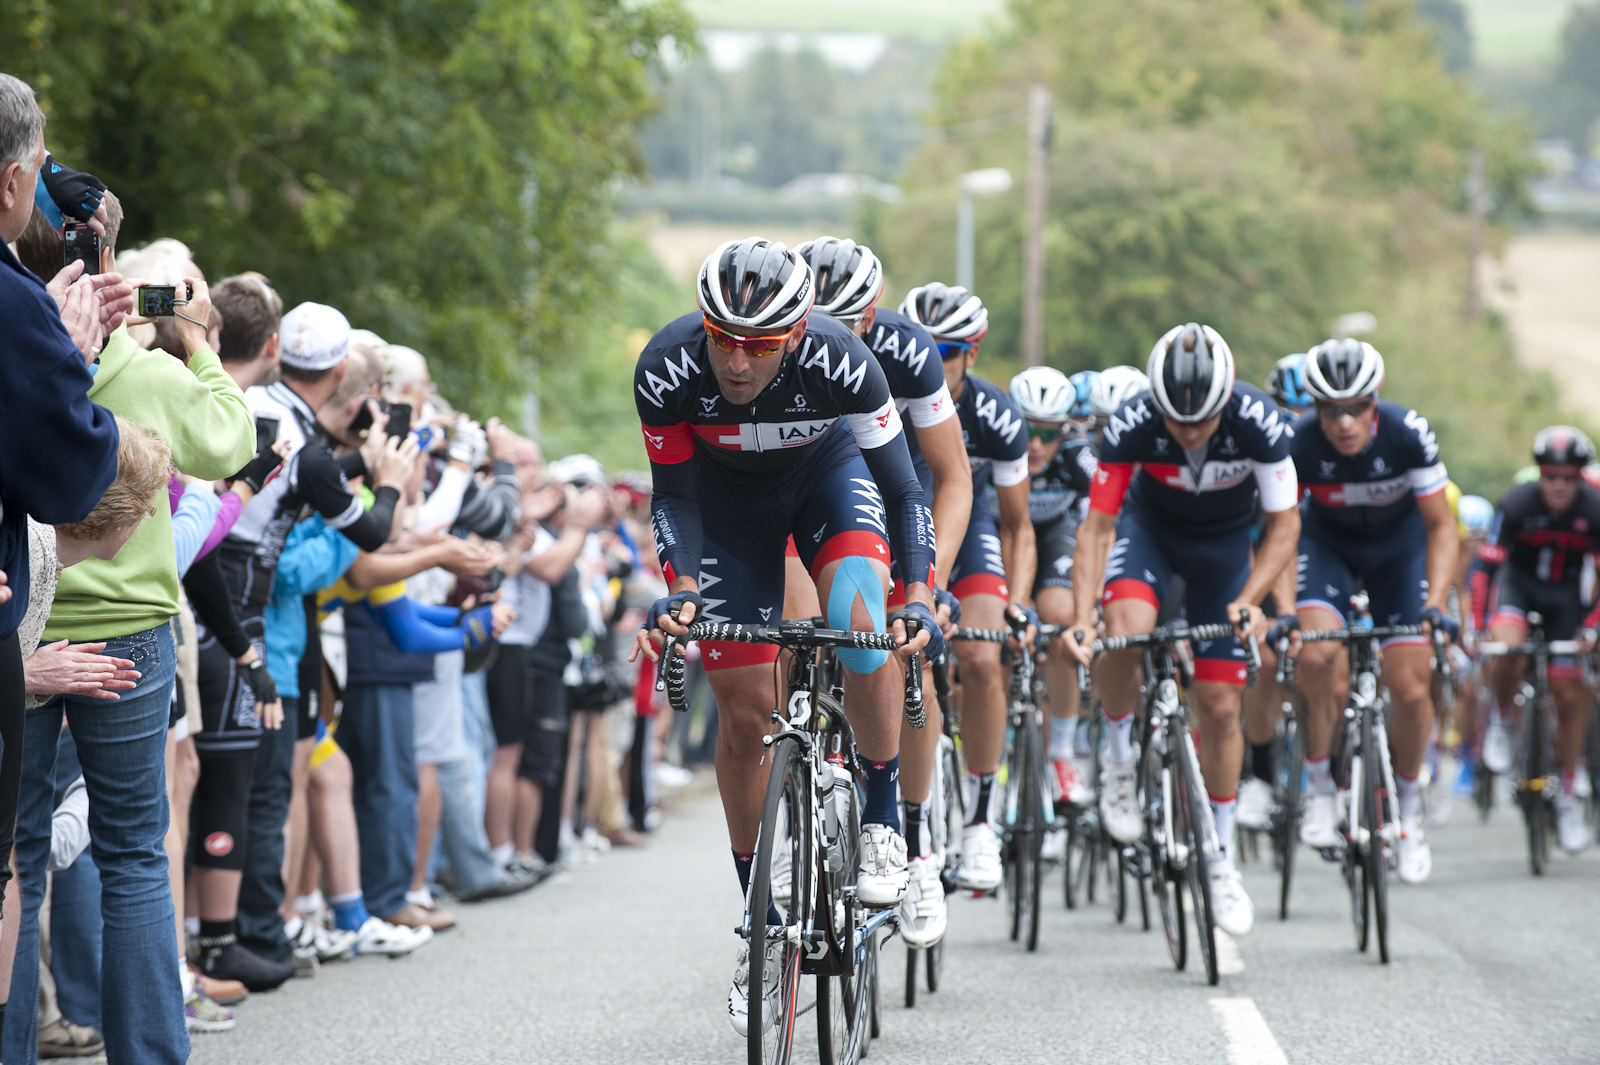 The big boys soon followed with Jerome Pineau leading IAM cycling up the climb.